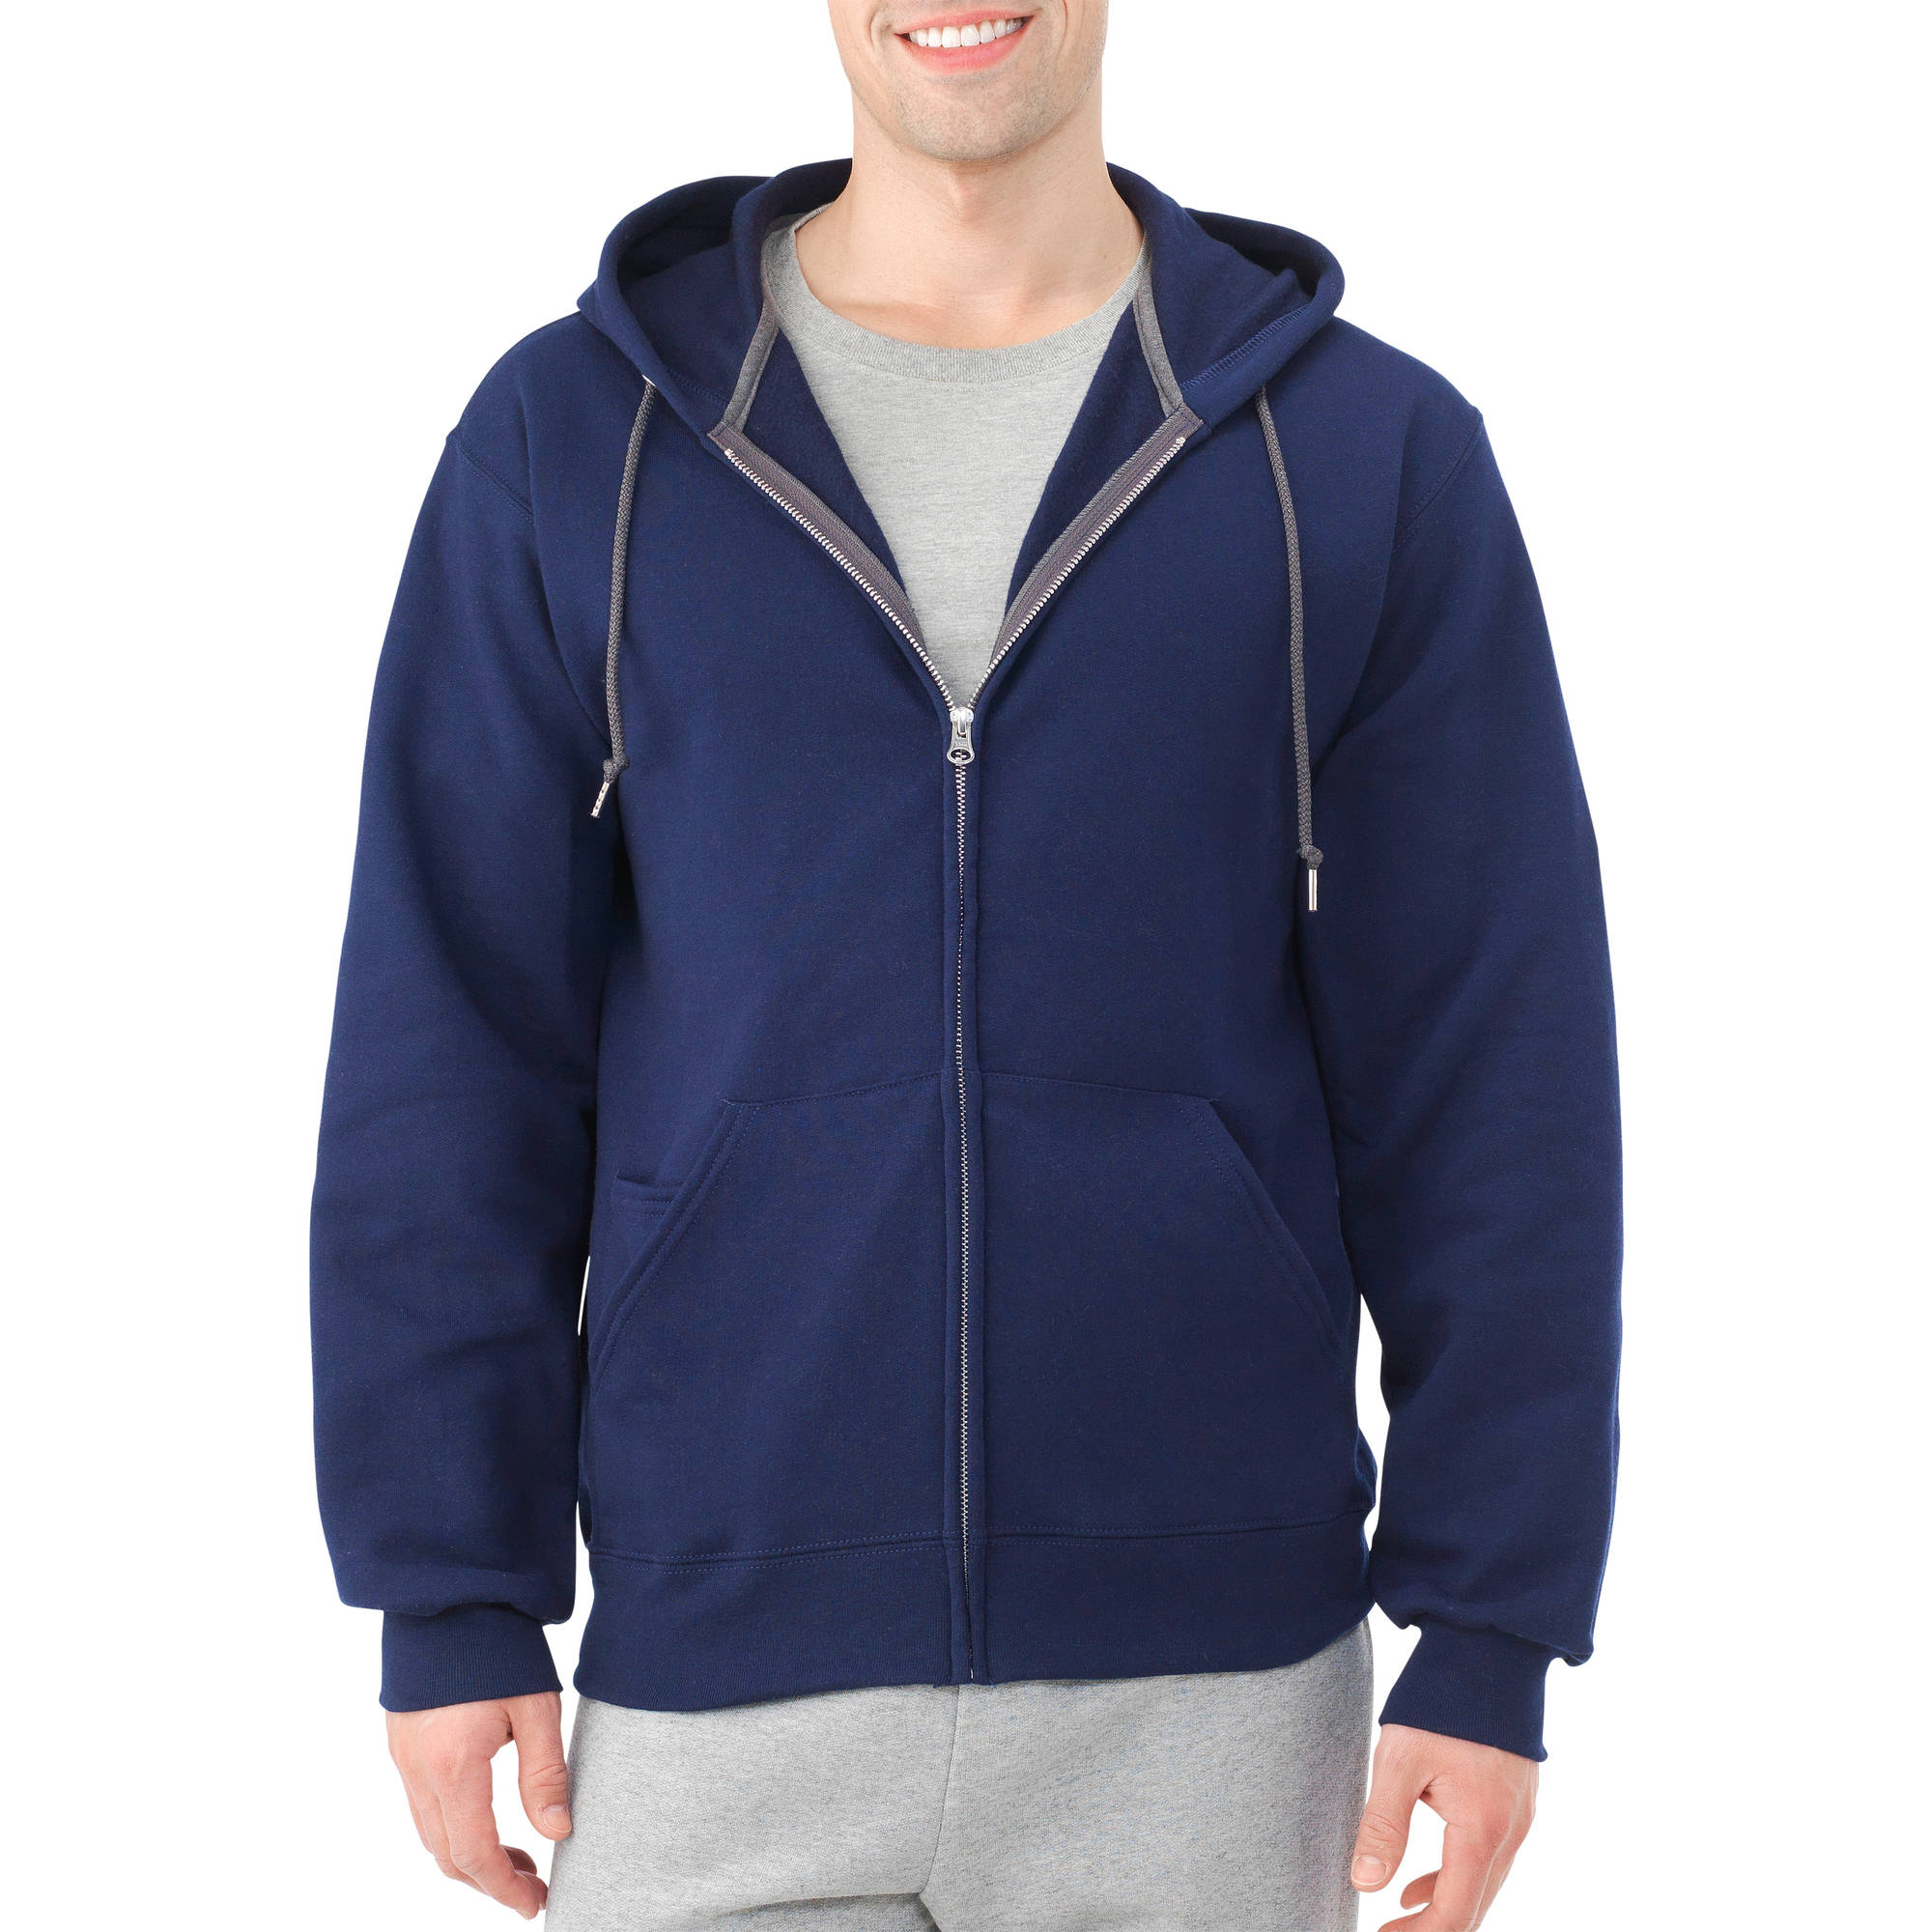 Fruit of the Loom Men's Dual Defense Fleece Full Zip Hooded Sweatshirt